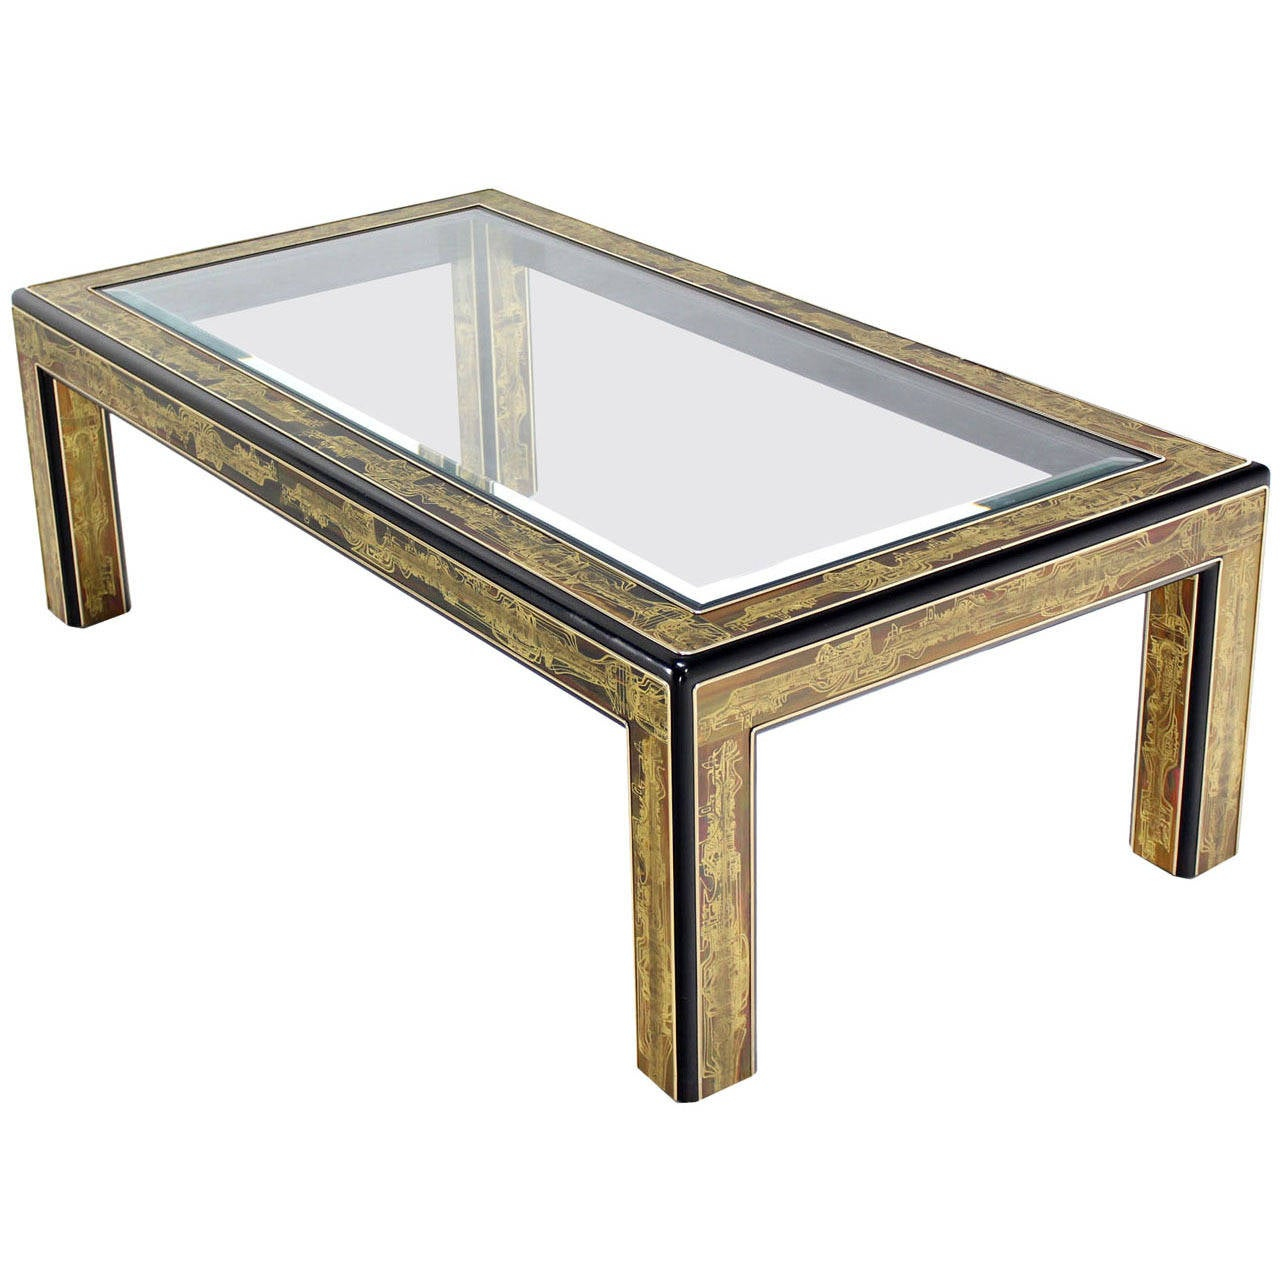 Rectangular Glass Top Brass And Wood Base Coffee Table By Mastercraft At 1stdibs